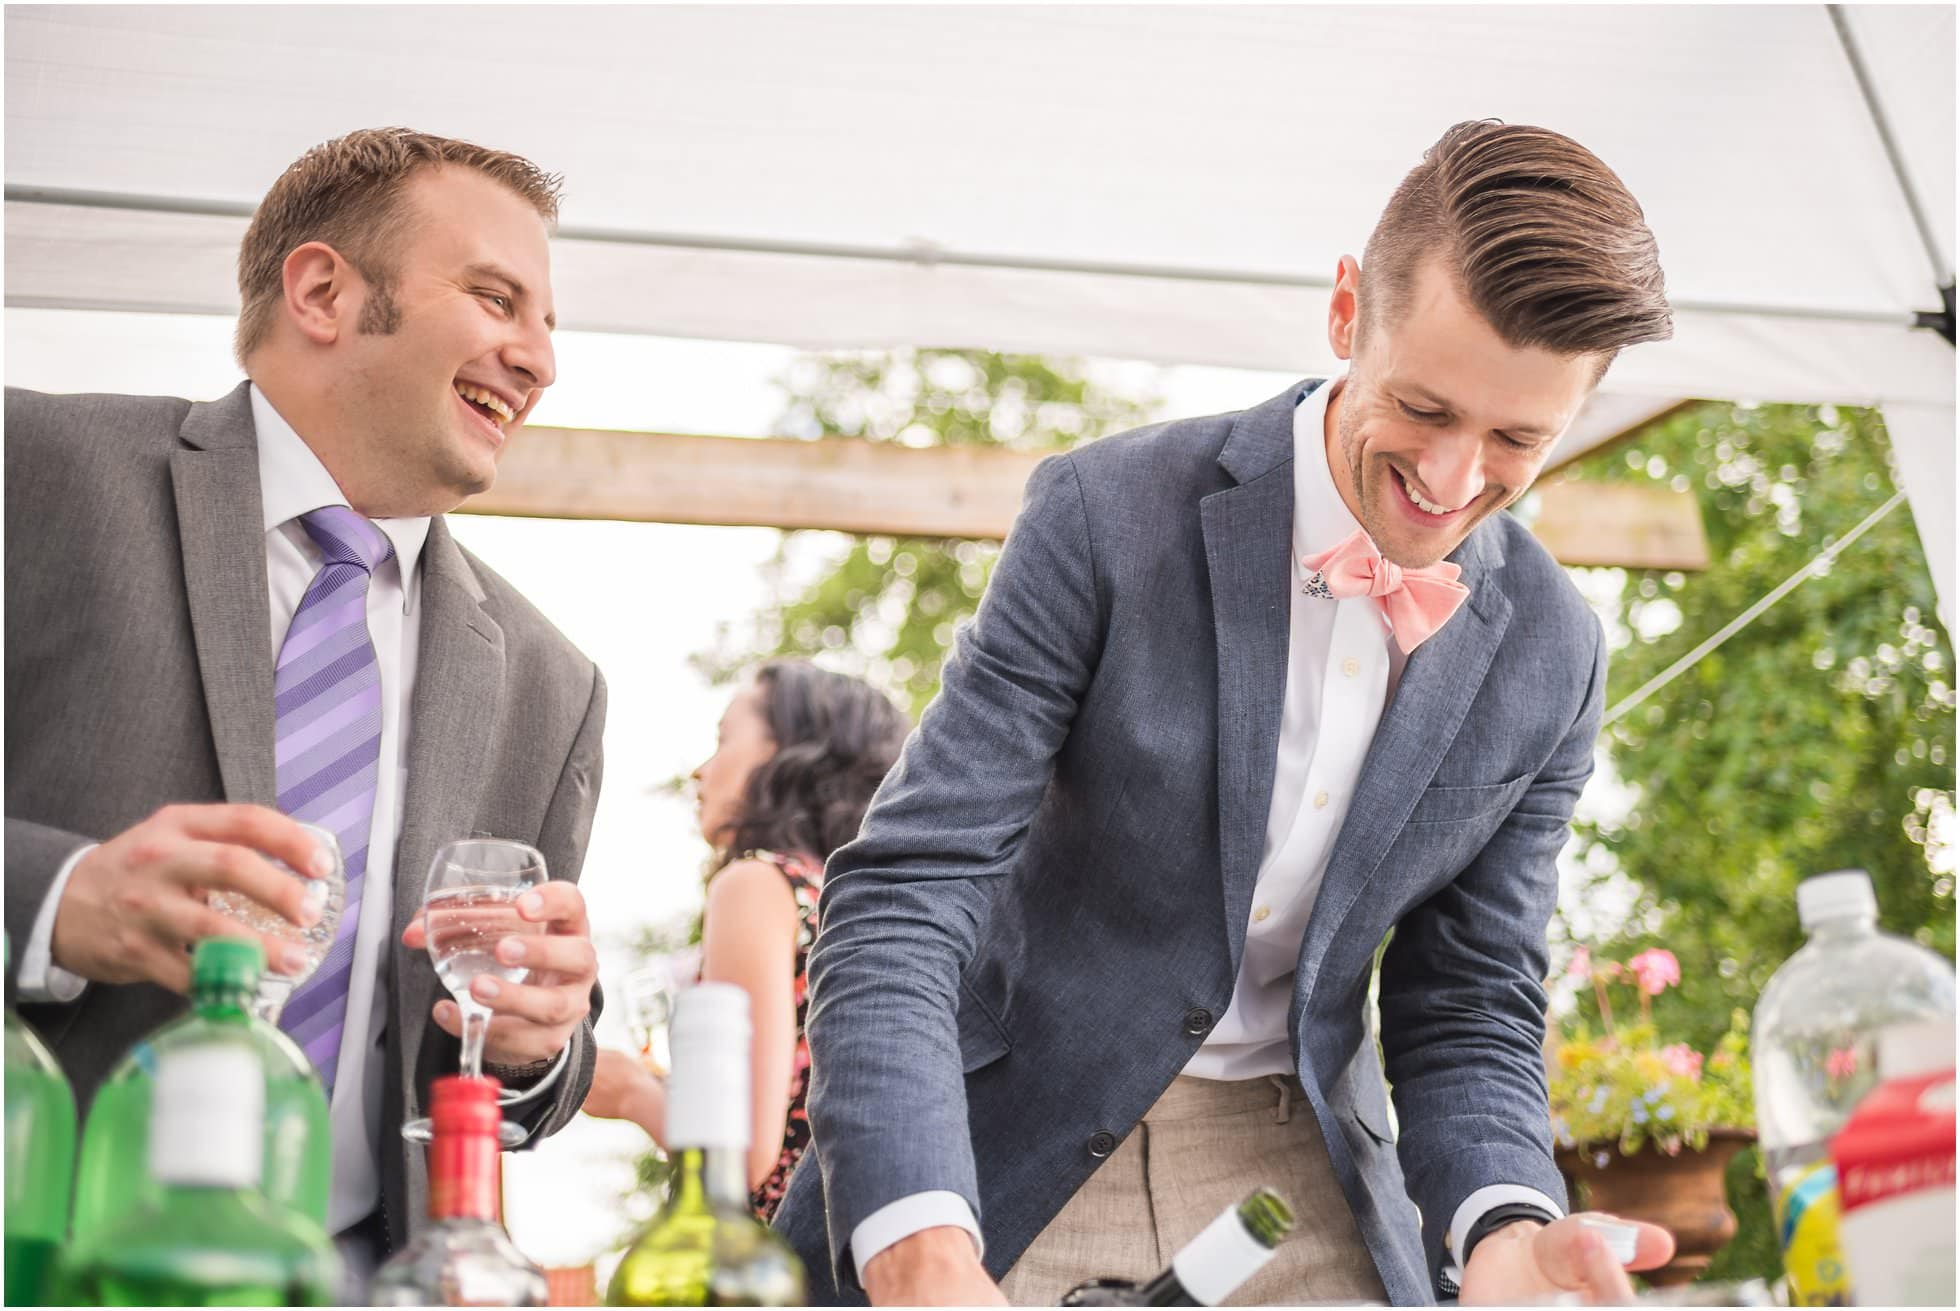 The groom helping himself to drinks